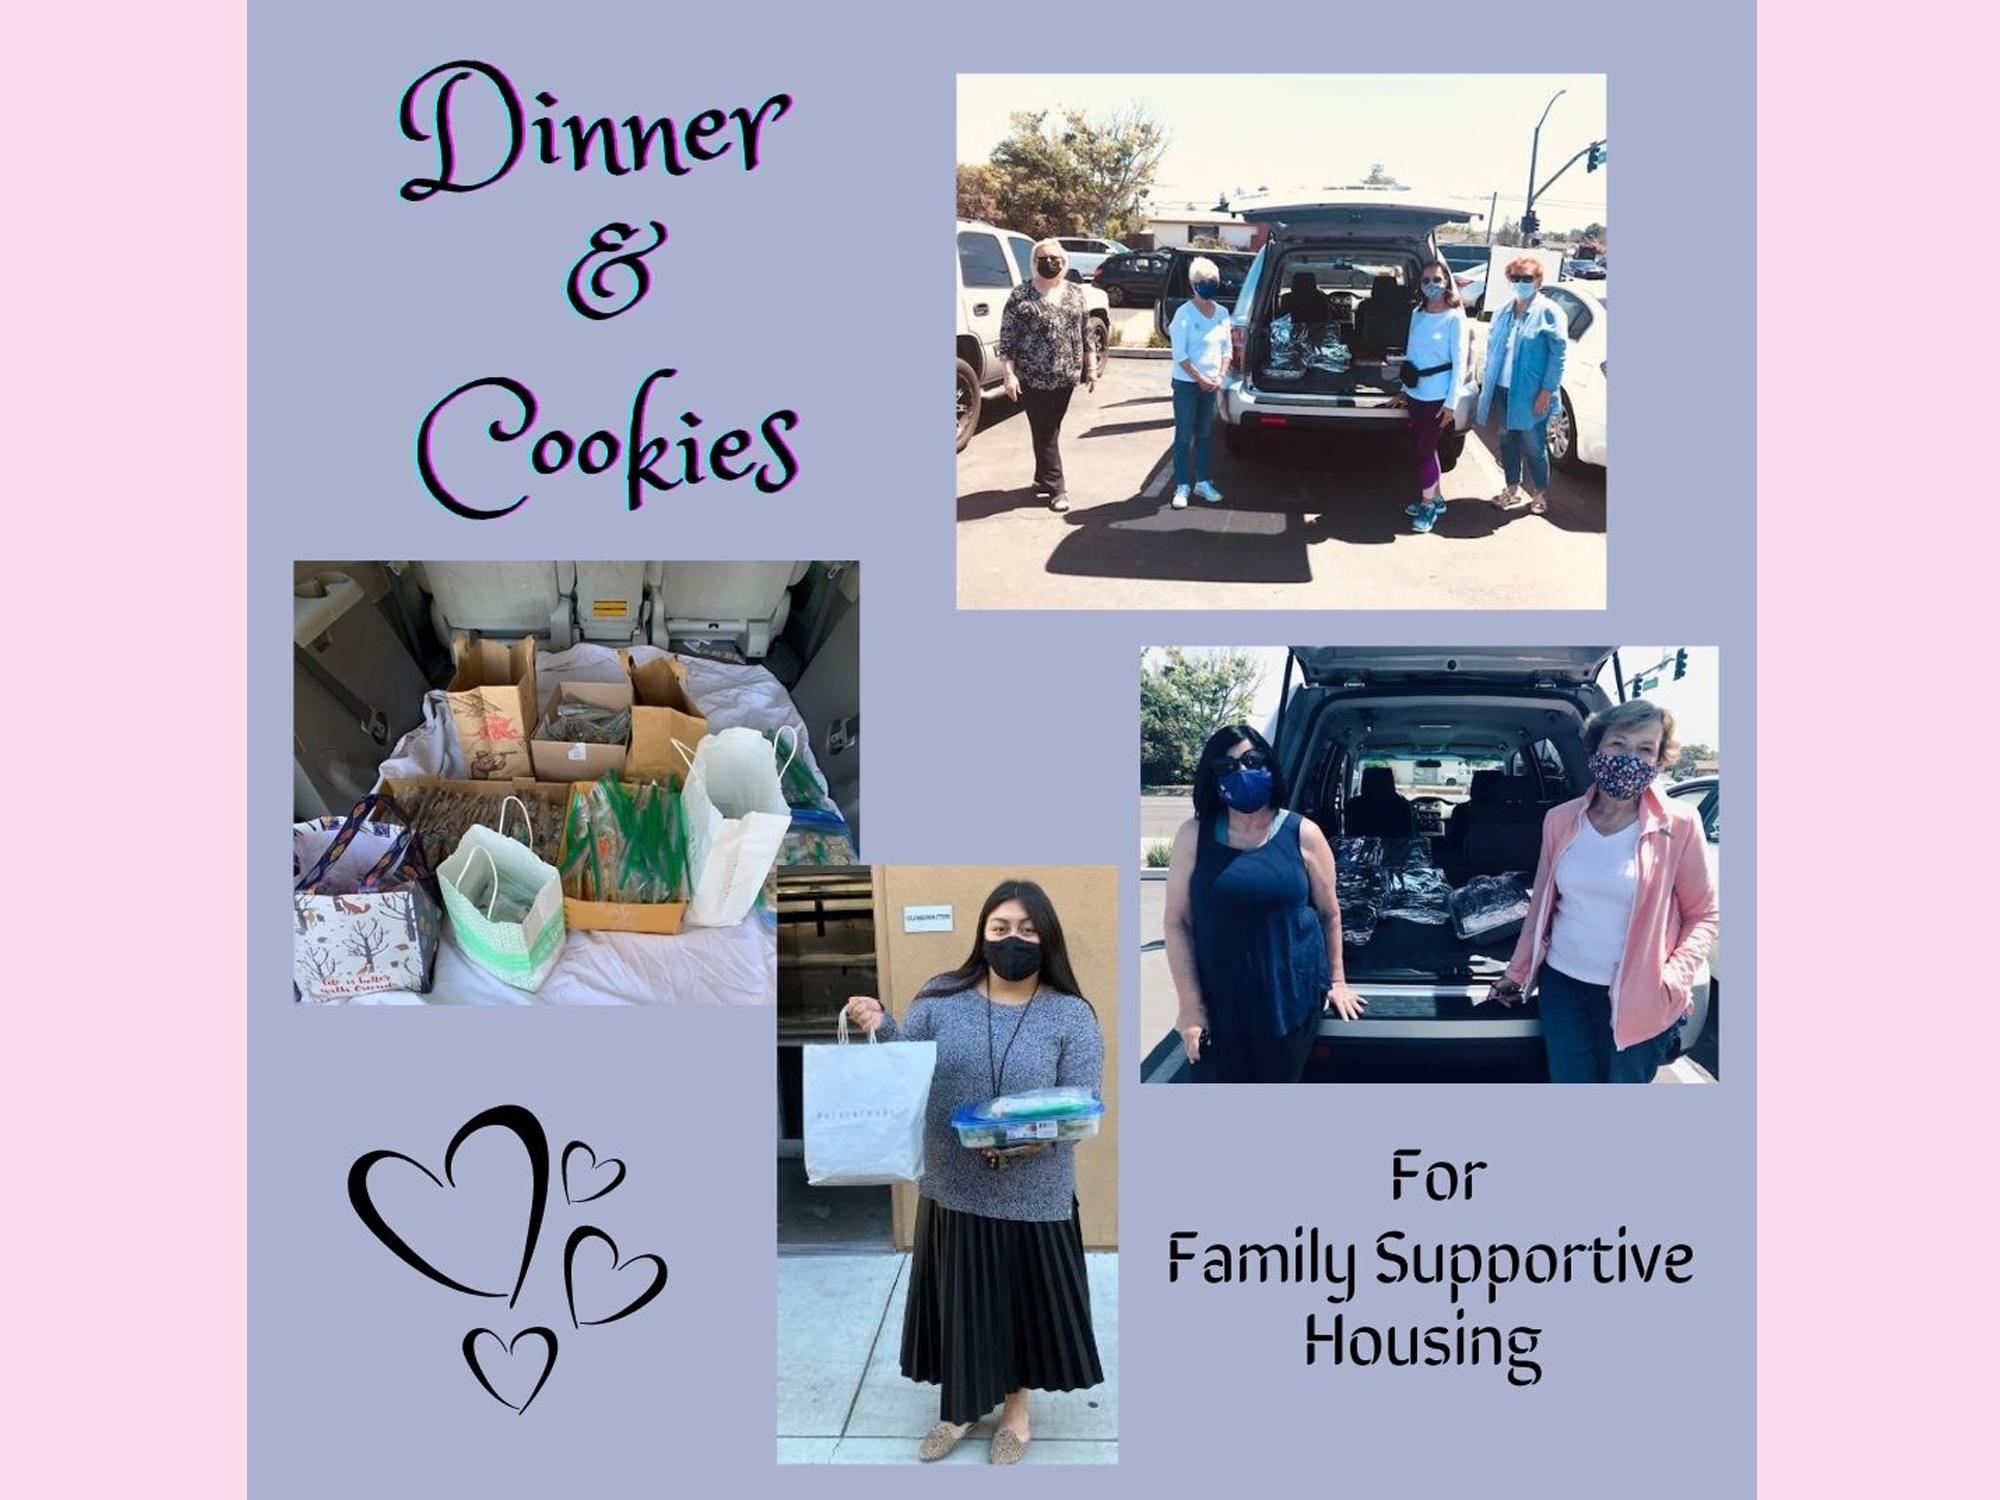 Dinner and Cookies for Family Supportive Housing